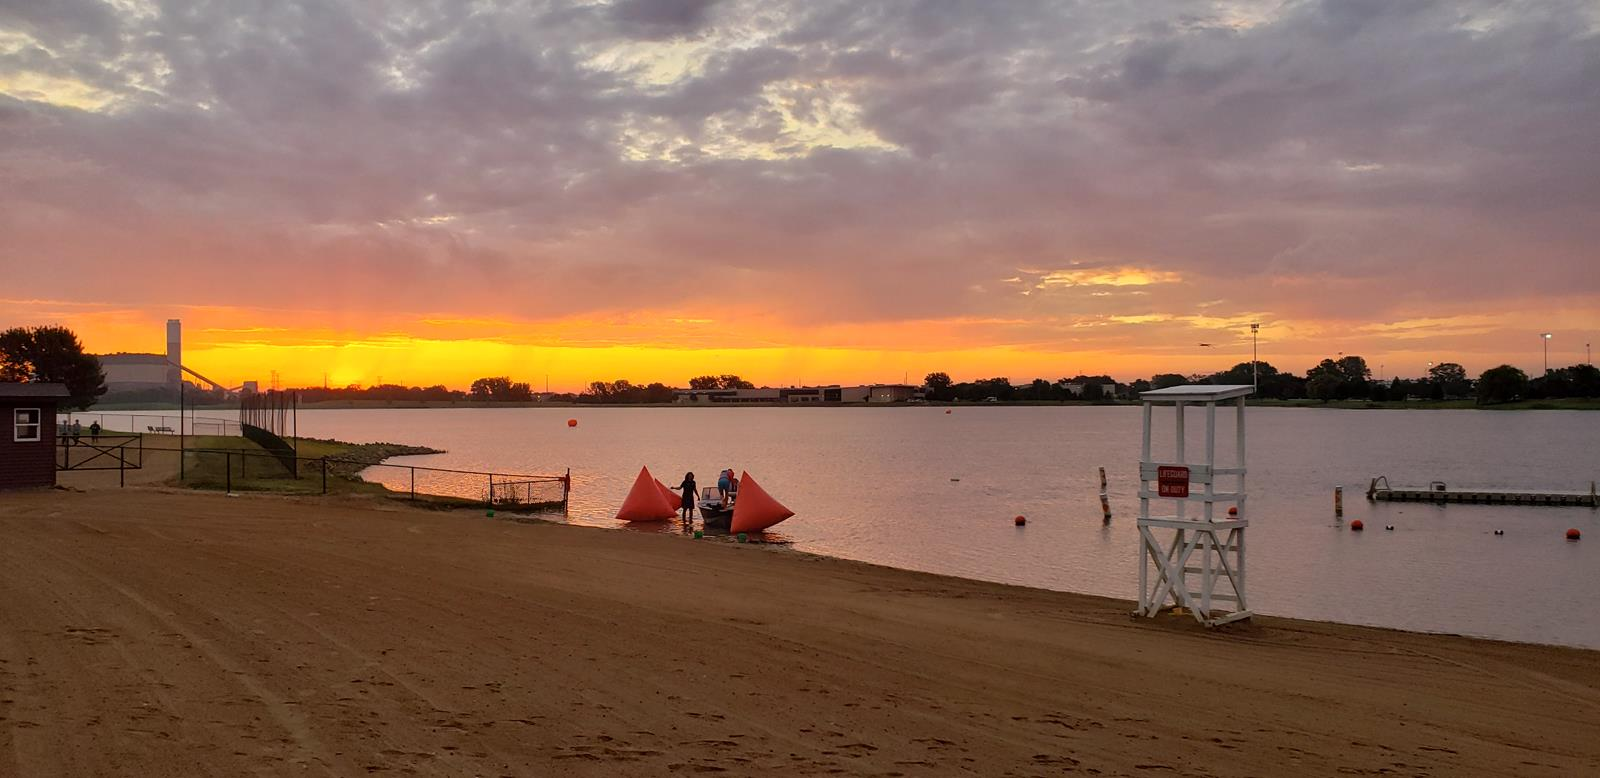 2019-08-18 UANA Open Water Swim sunrize with triangle markers_060323